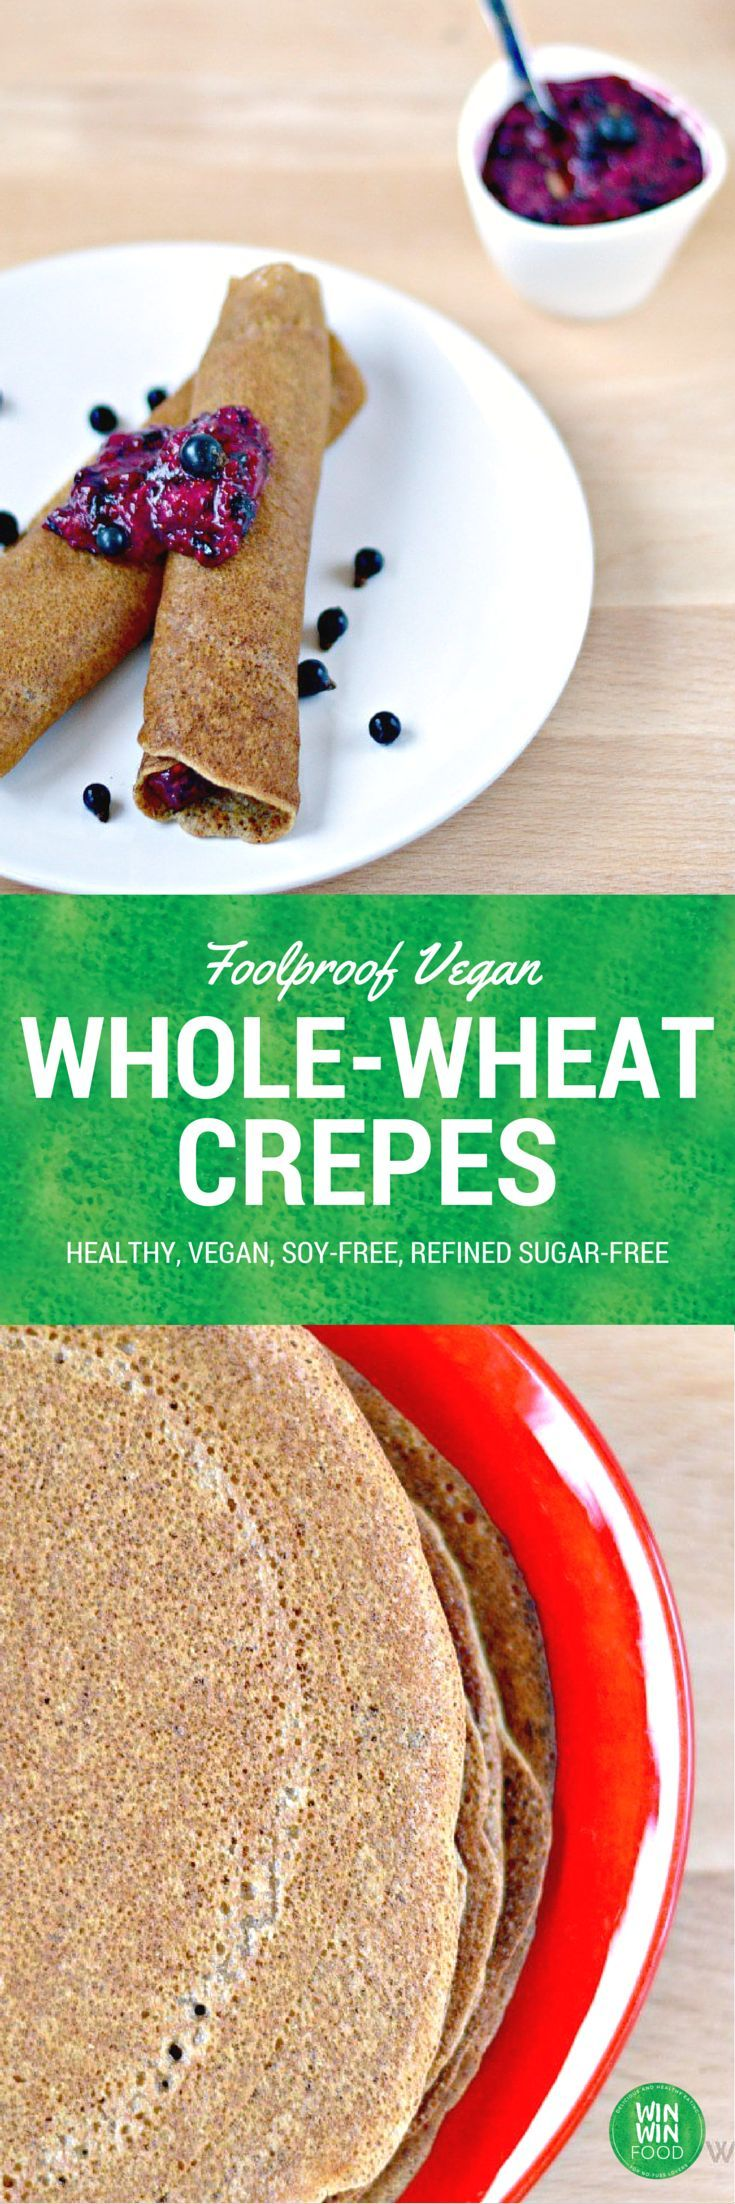 Whole-Wheat Vegan Crepes